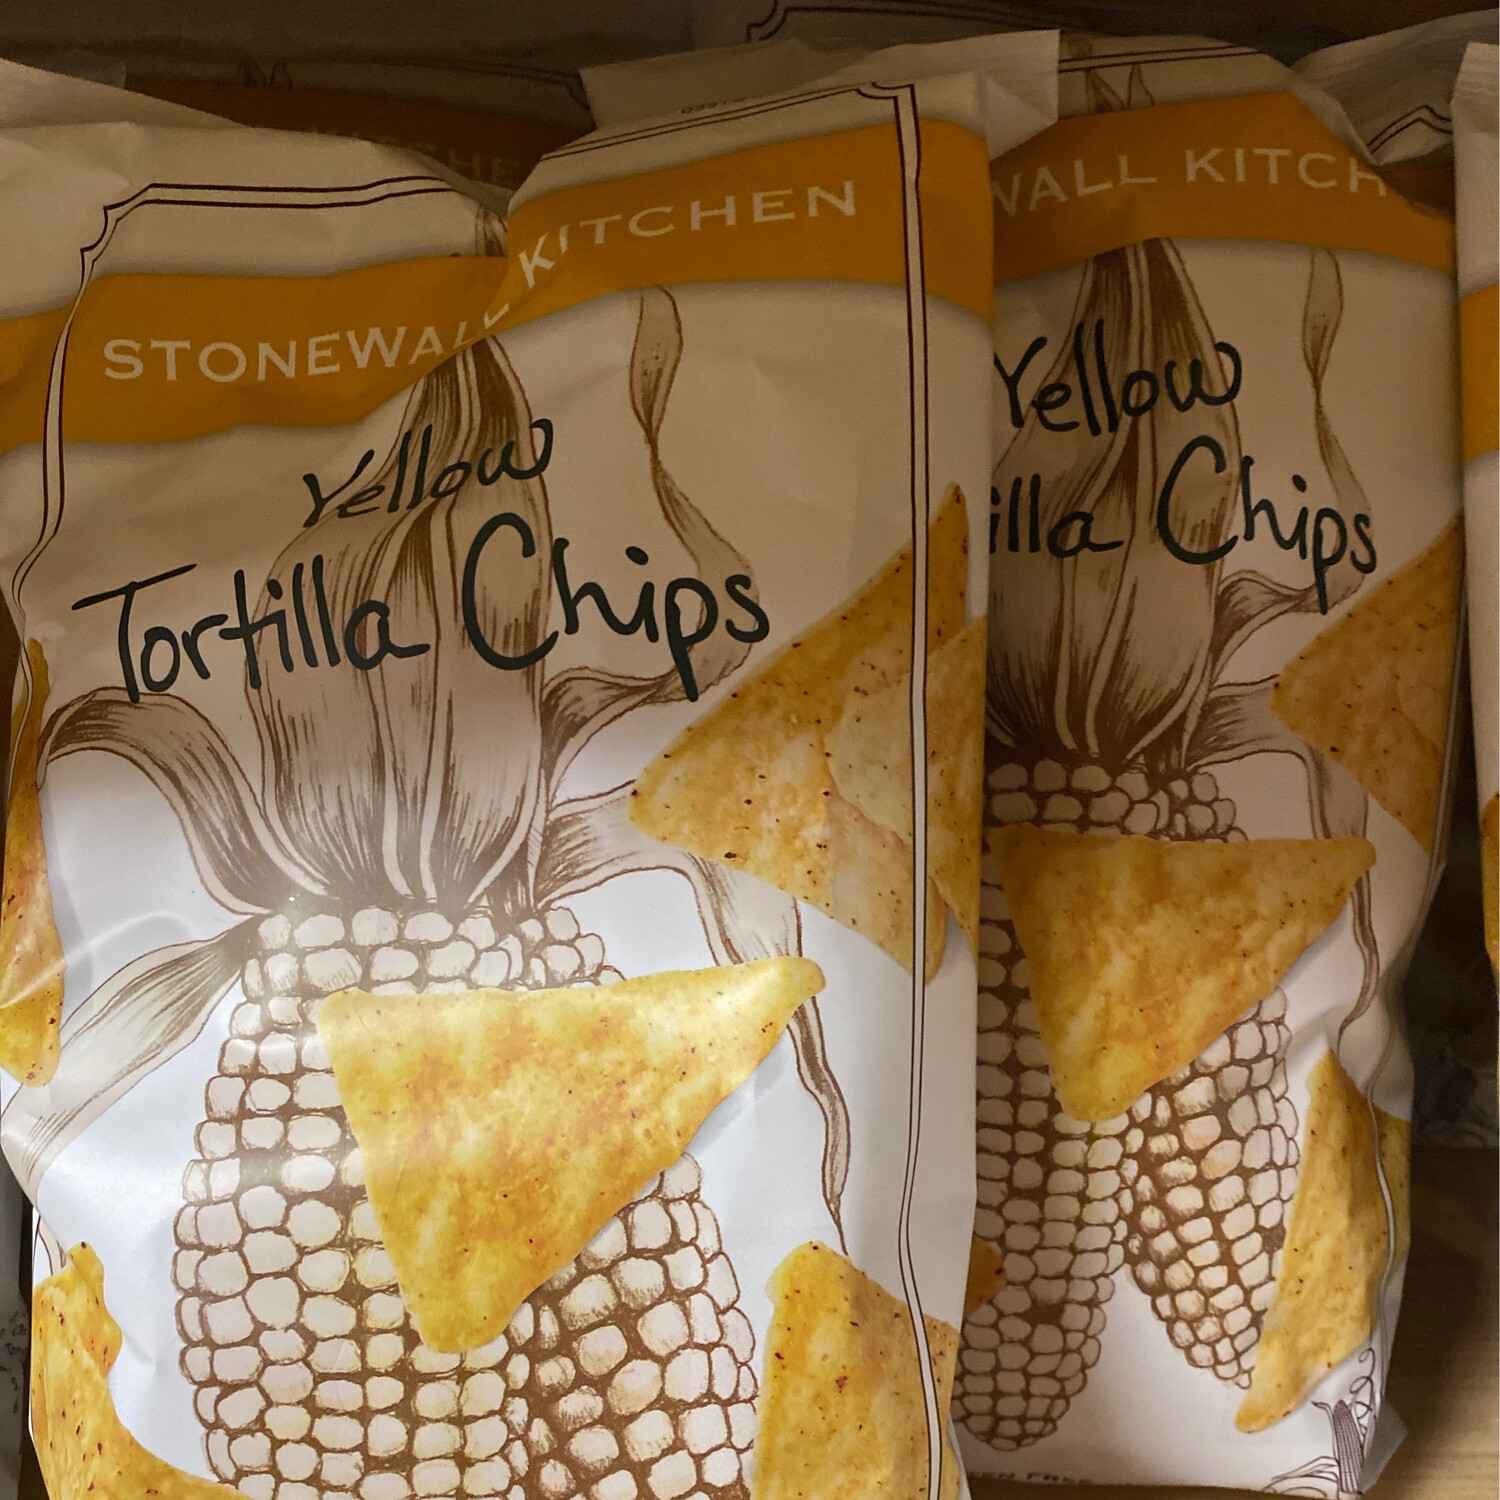 Yellow Corn Chips